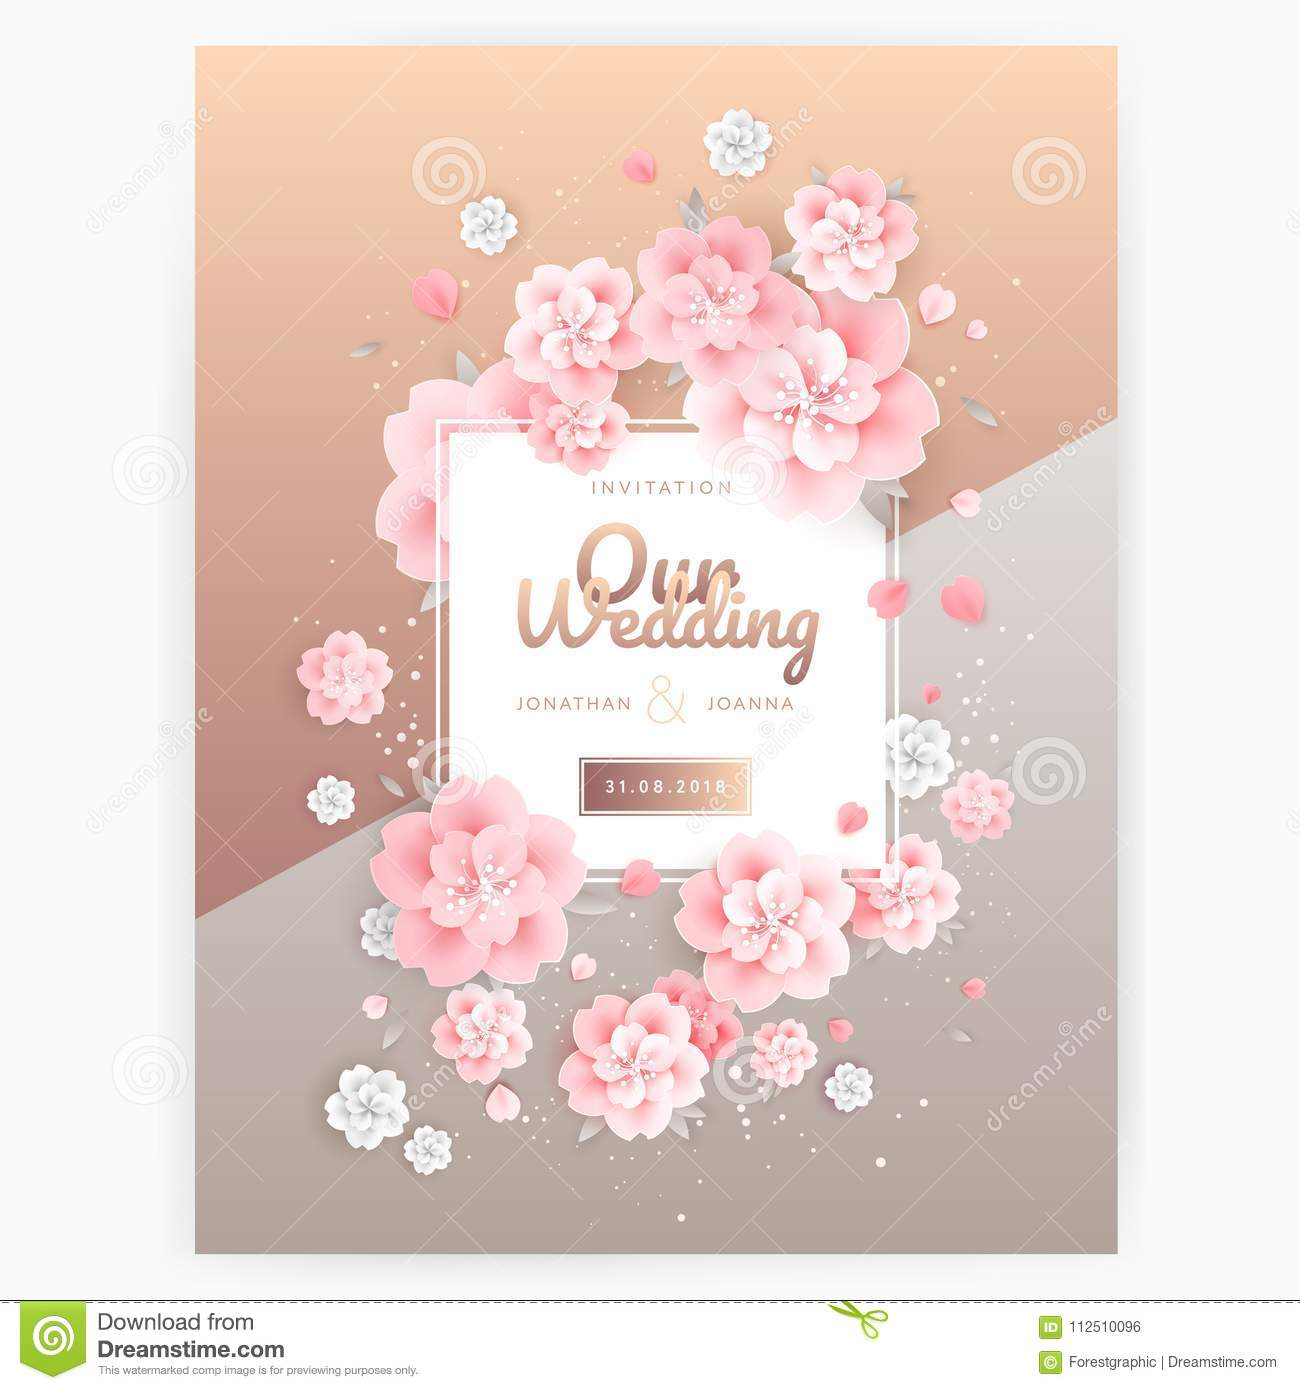 Wedding Background Invitation Card Template Pink Roses On Gold Stock Vector Illustration Of Anniversary Blossom 112510096